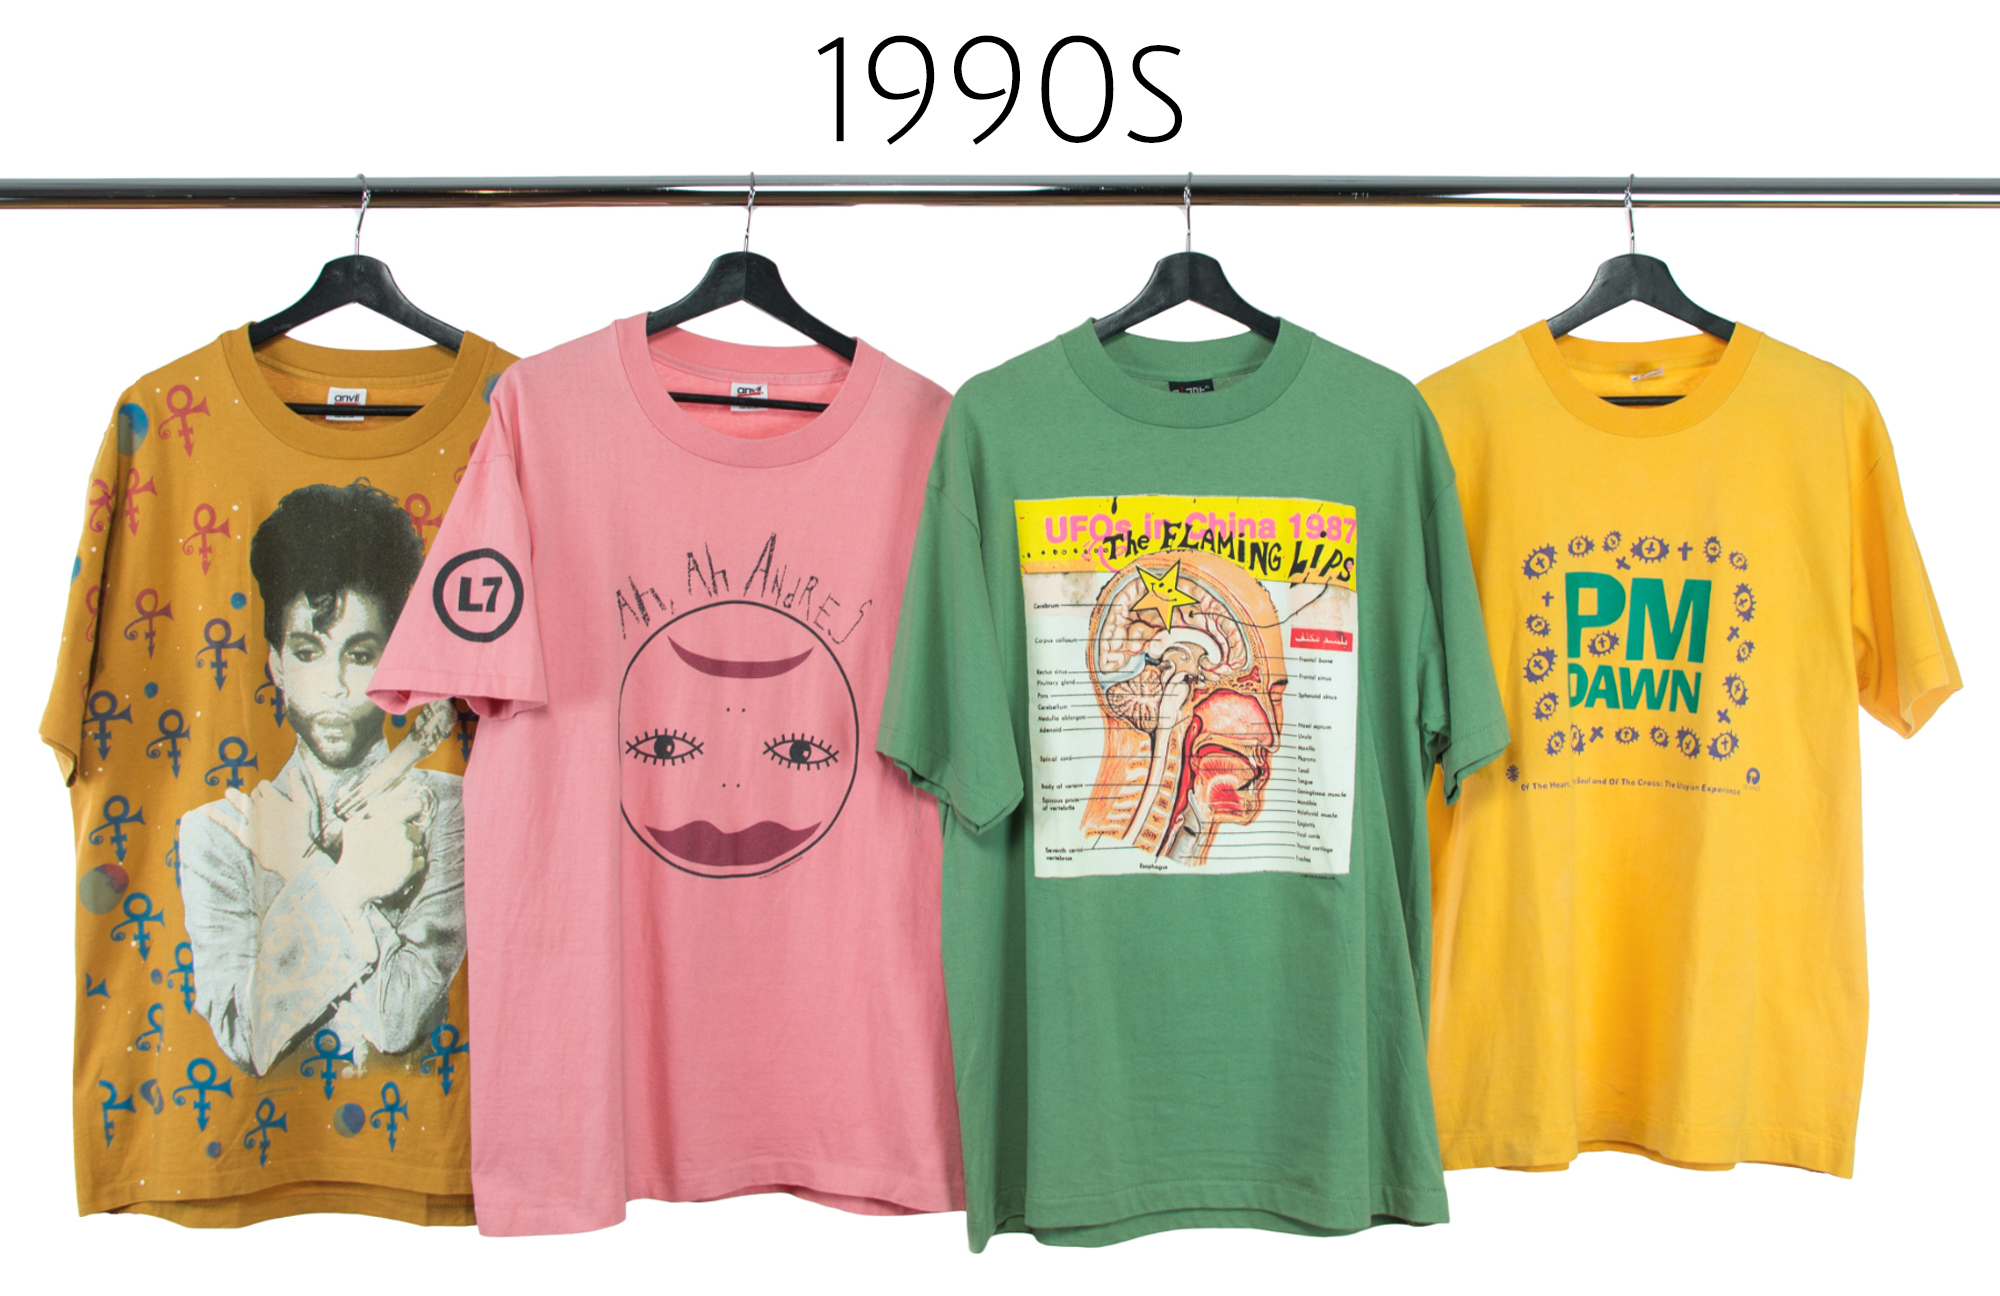 43dd0d7d4b5 WyCo Vintage | World's finest selection of authentic vintage t-shirts